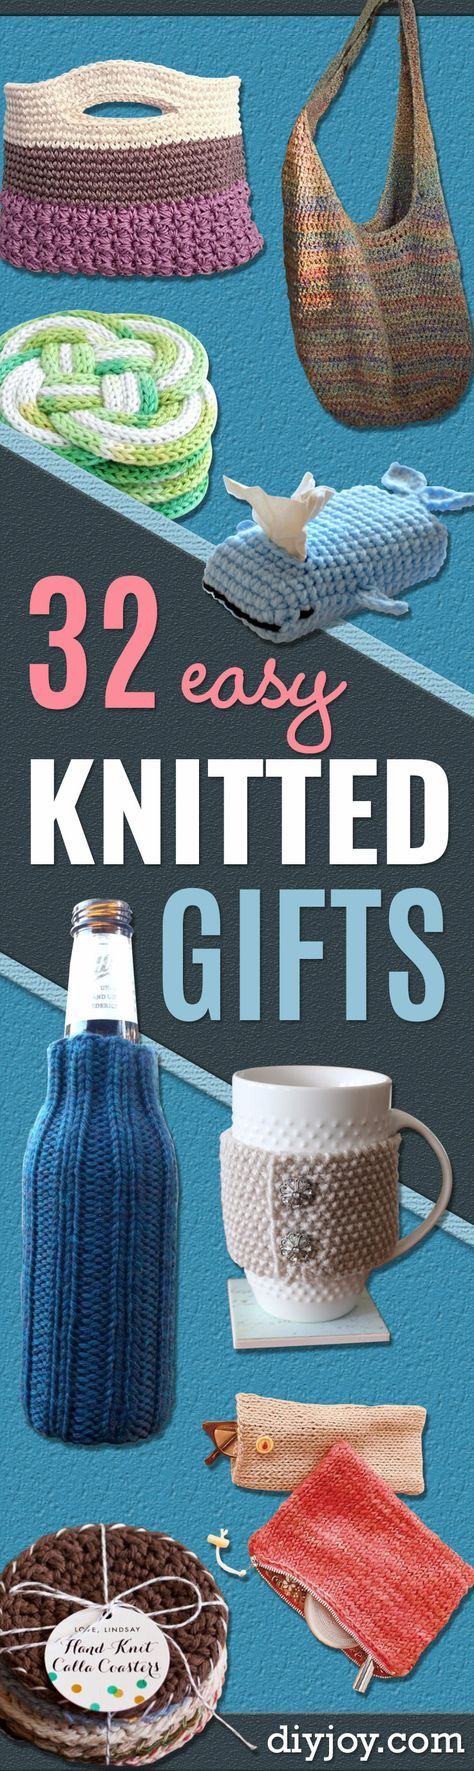 Easy Knitting Projects For Gifts : Best knitting images on pinterest hand crafts knit